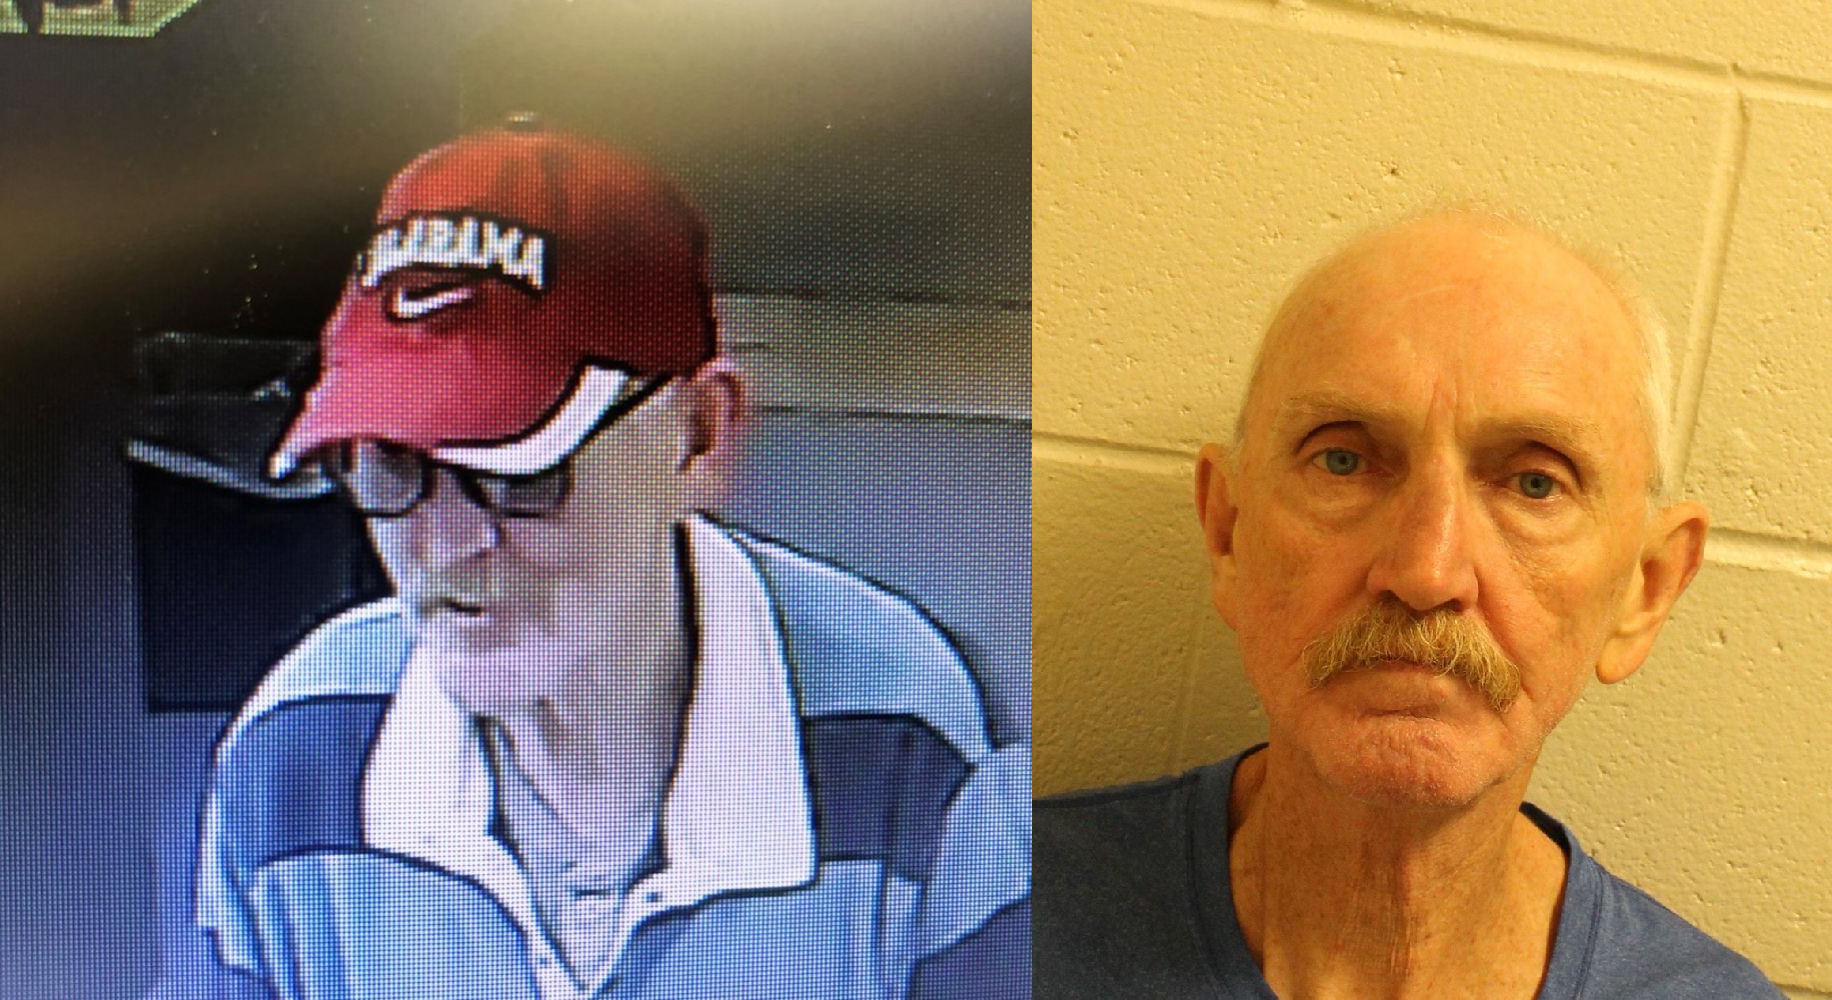 65-year-old man charged in Gardendale bank robbery